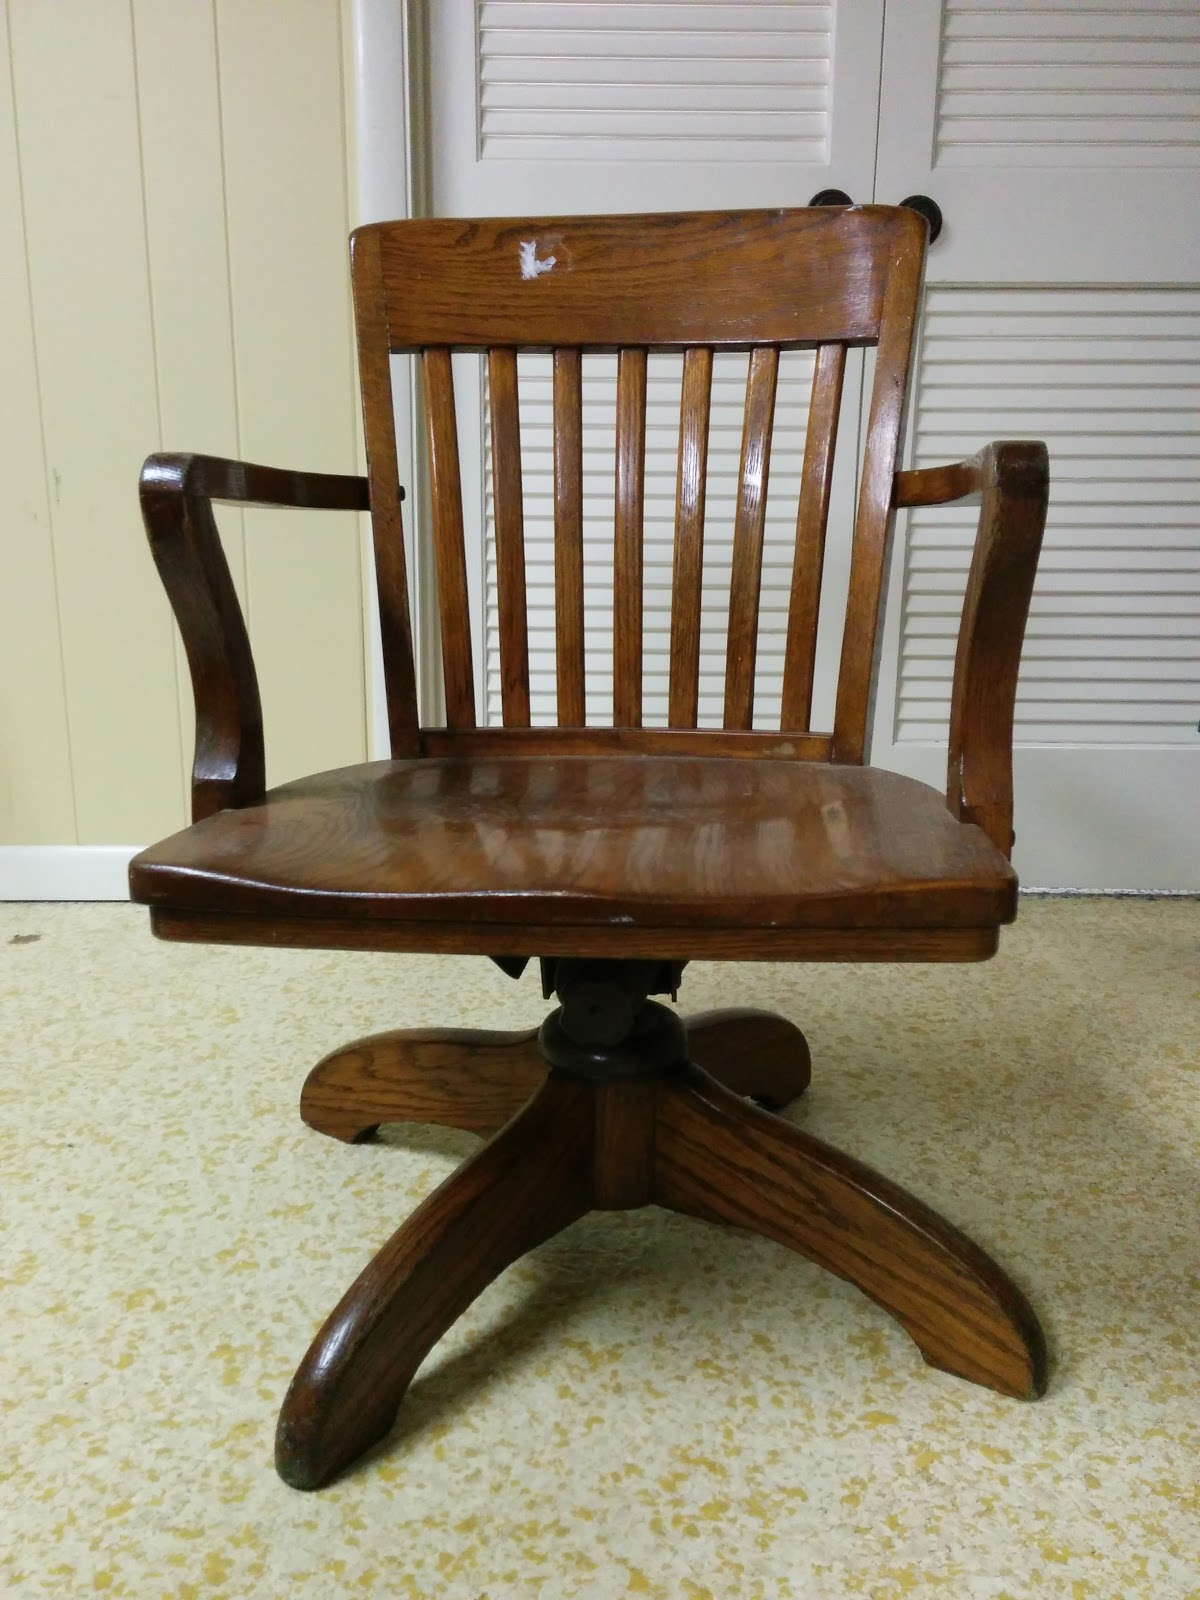 Vintage wooden office chair before repairs, new wheels, and fresh paint